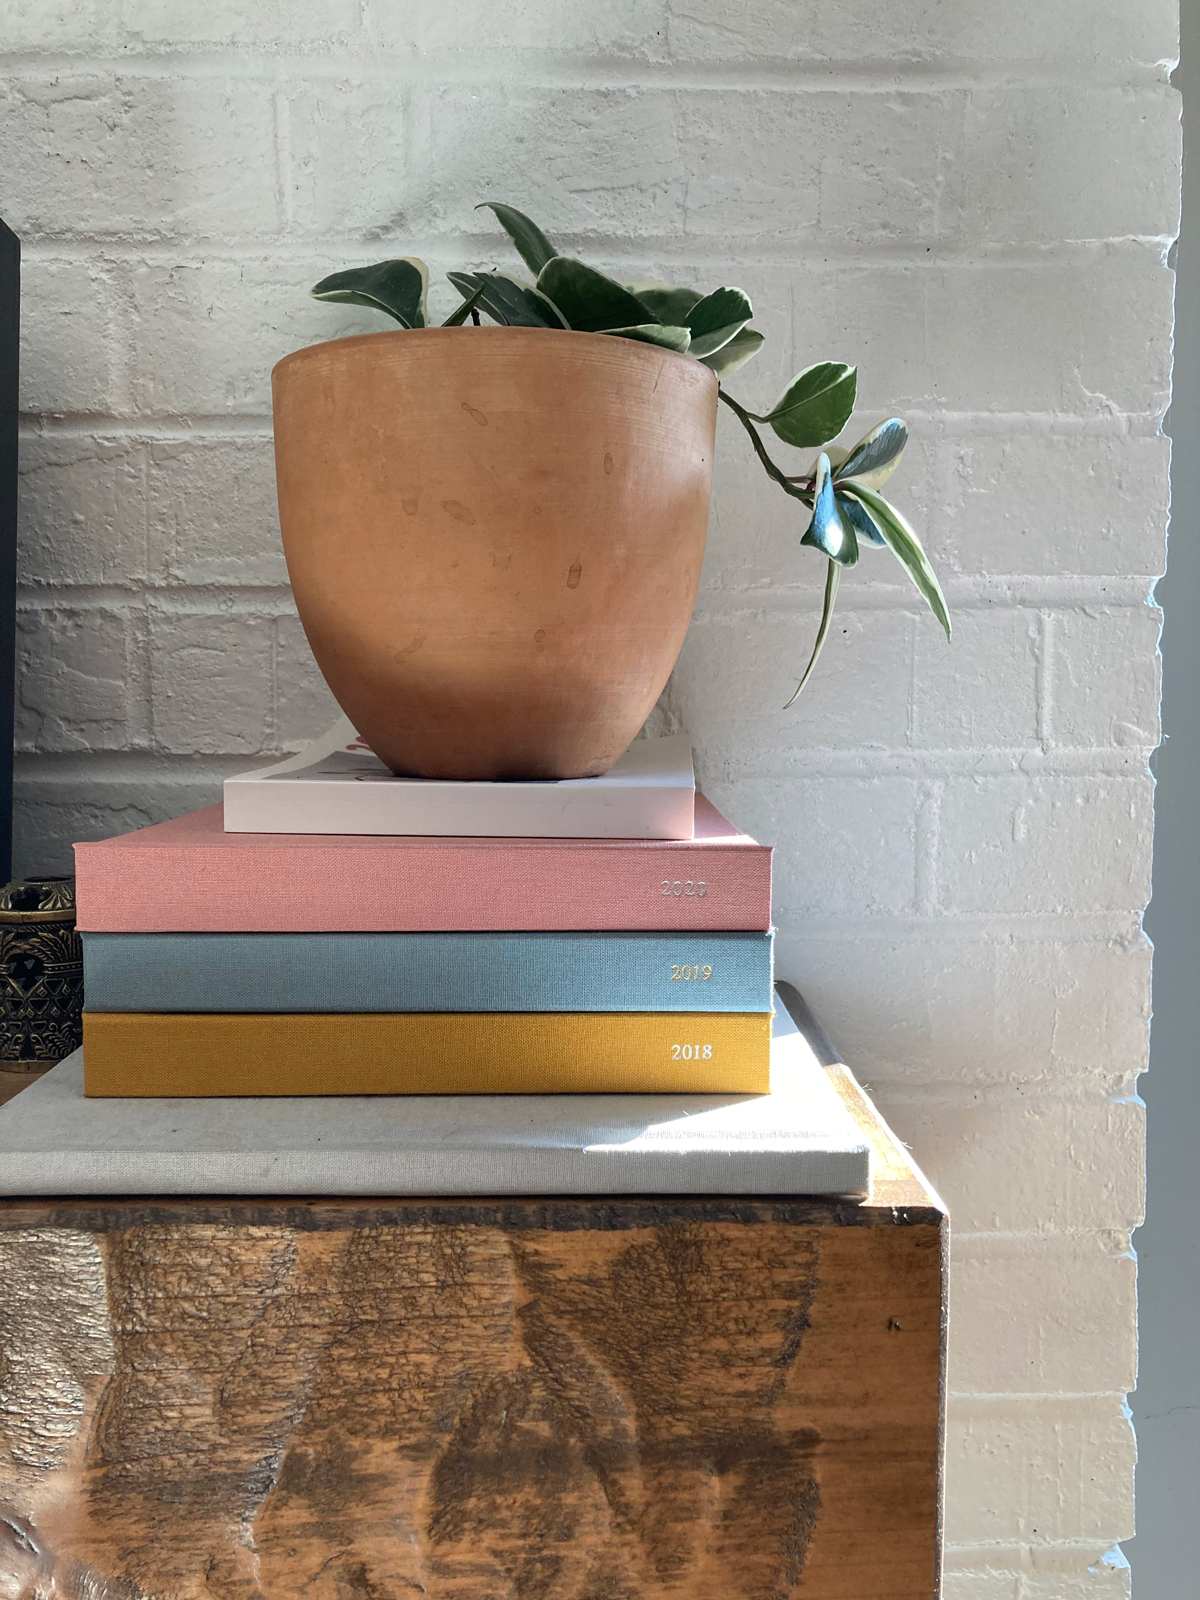 Colorful stack of photo books on a dresser under a plant